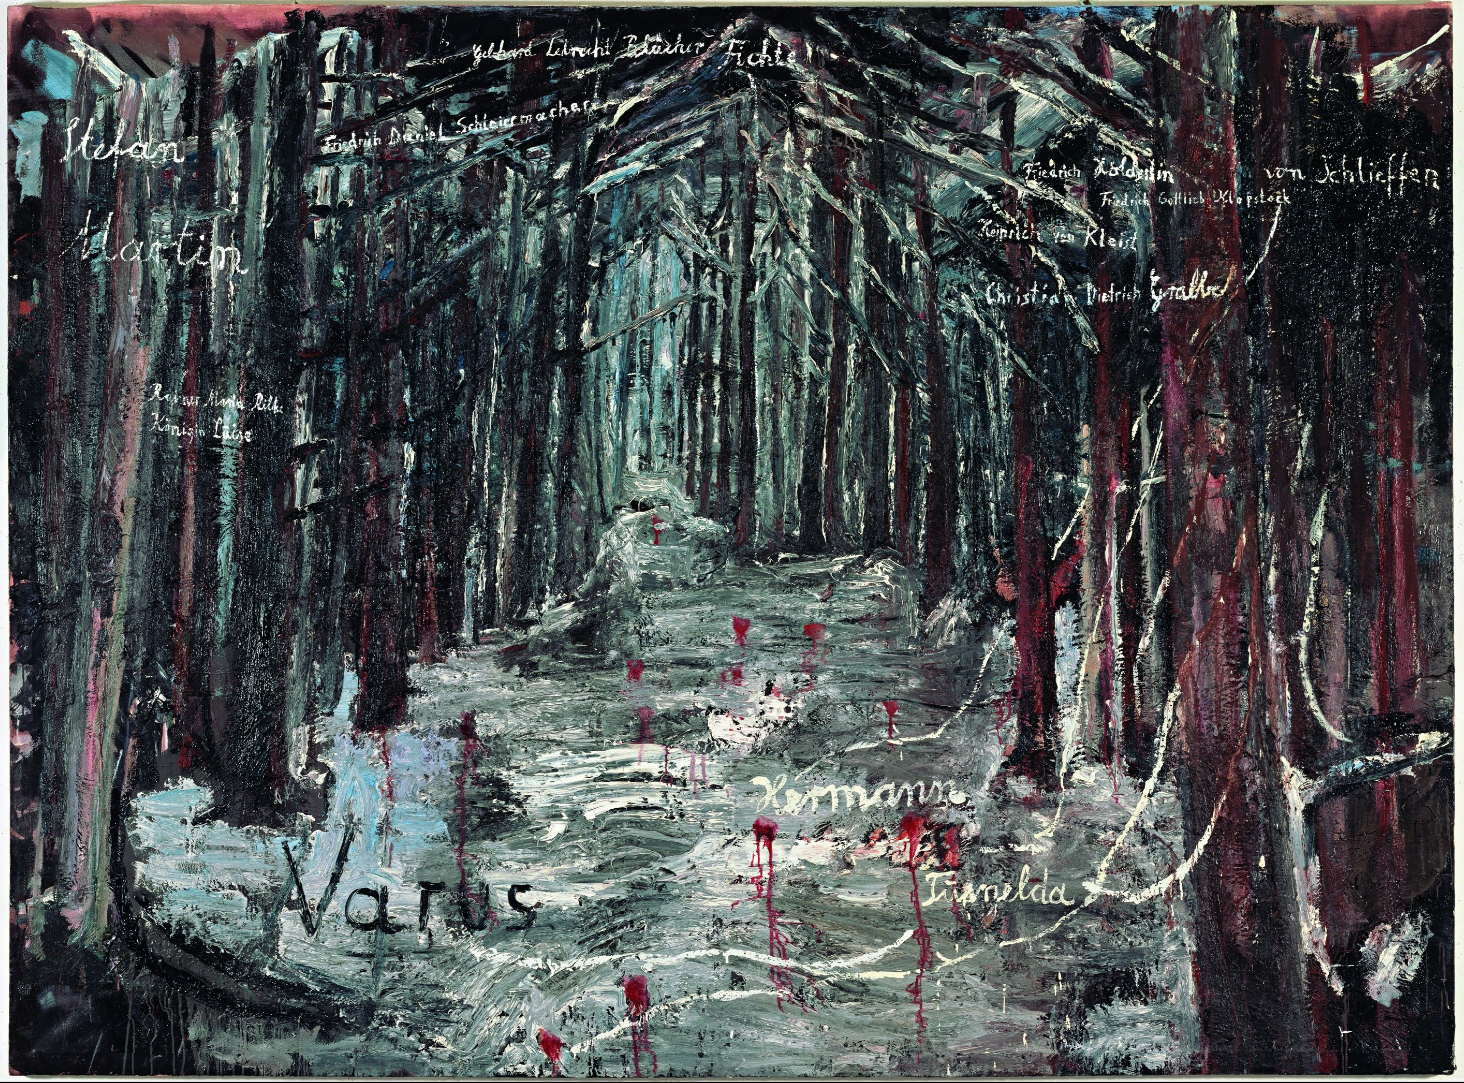 Anselm Kiefer  Varus,  1976 Oil and acrylic on burlap, 78 7/10 × 106 3/10 in Centre Pompidou